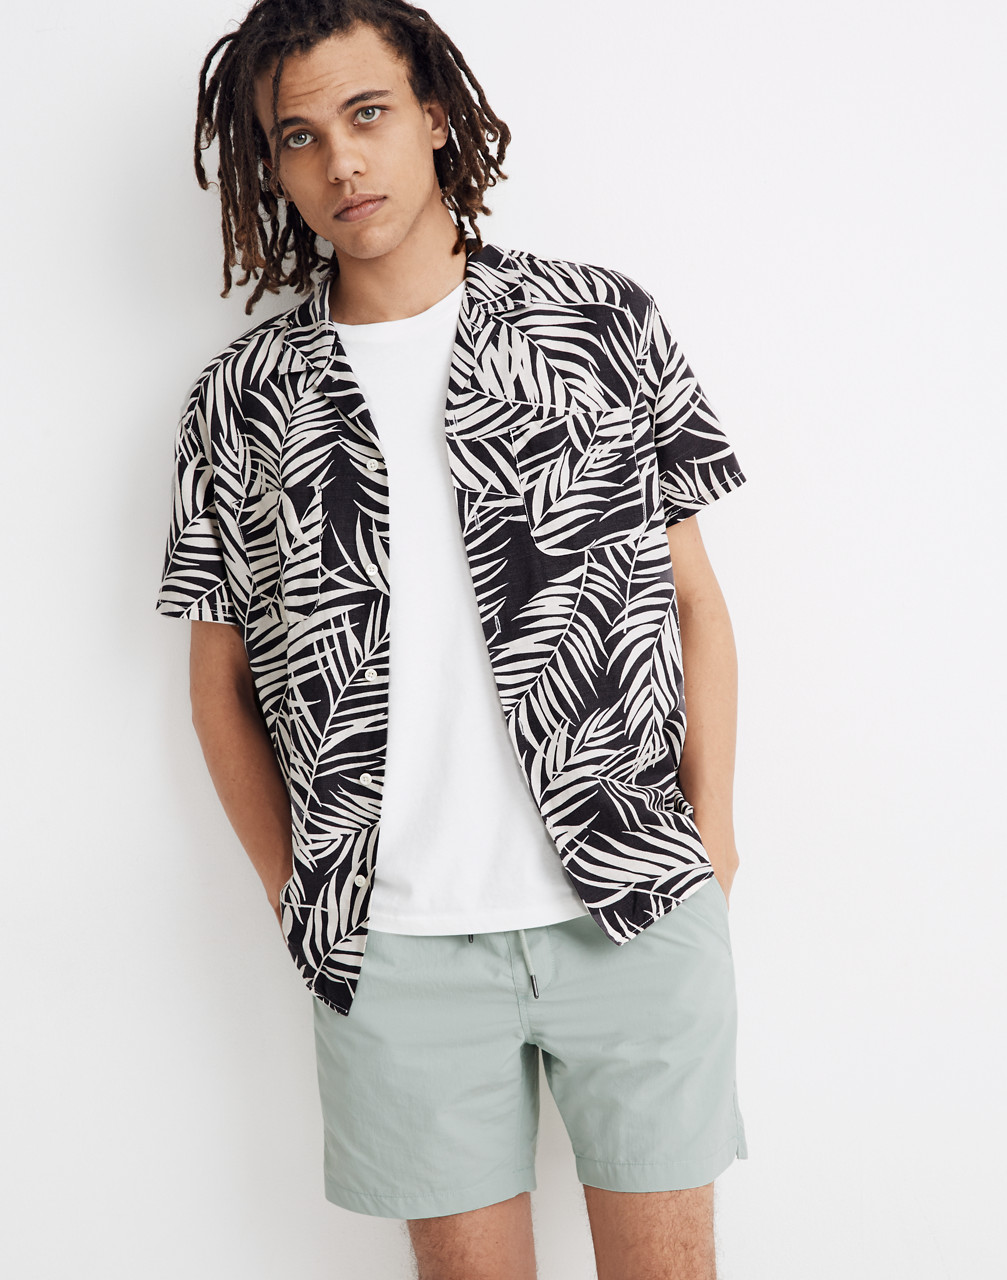 80s Men's Clothing | Shirts, Jeans, Jackets for Guys Easy Camp Shirt in Fern Fronds $59.99 AT vintagedancer.com